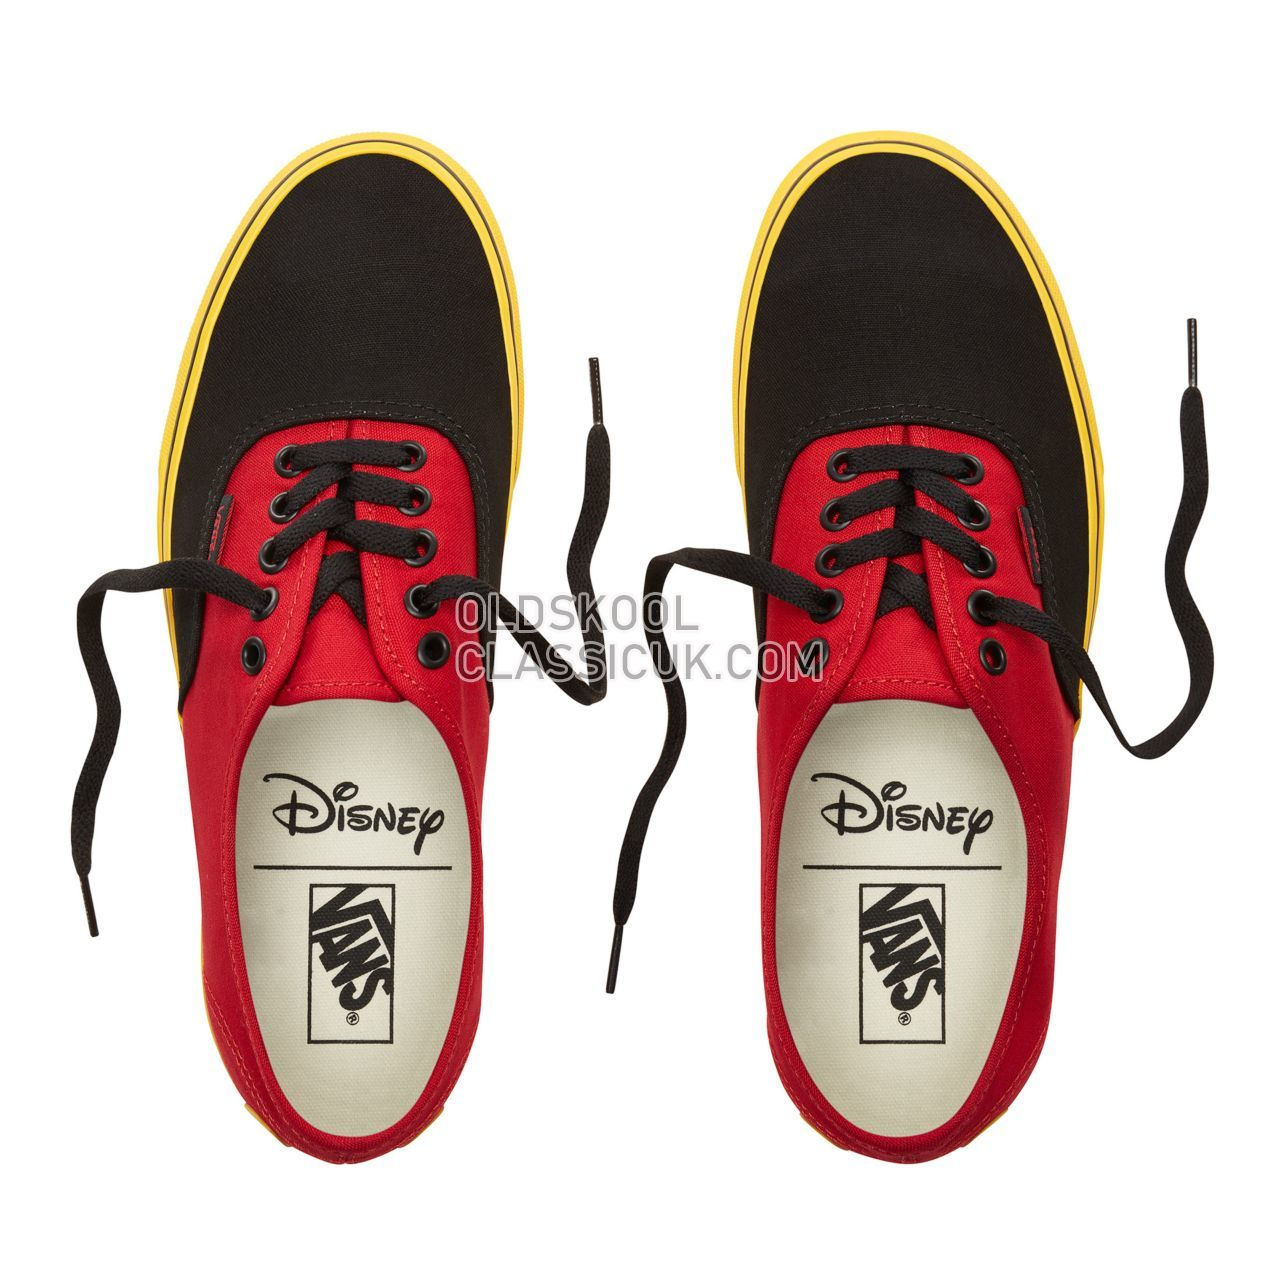 Vans Disney x Vans Authentic Sneakers Mens (Disney) Mickey/Red/Yellow VN0A38EMUK9 Shoes